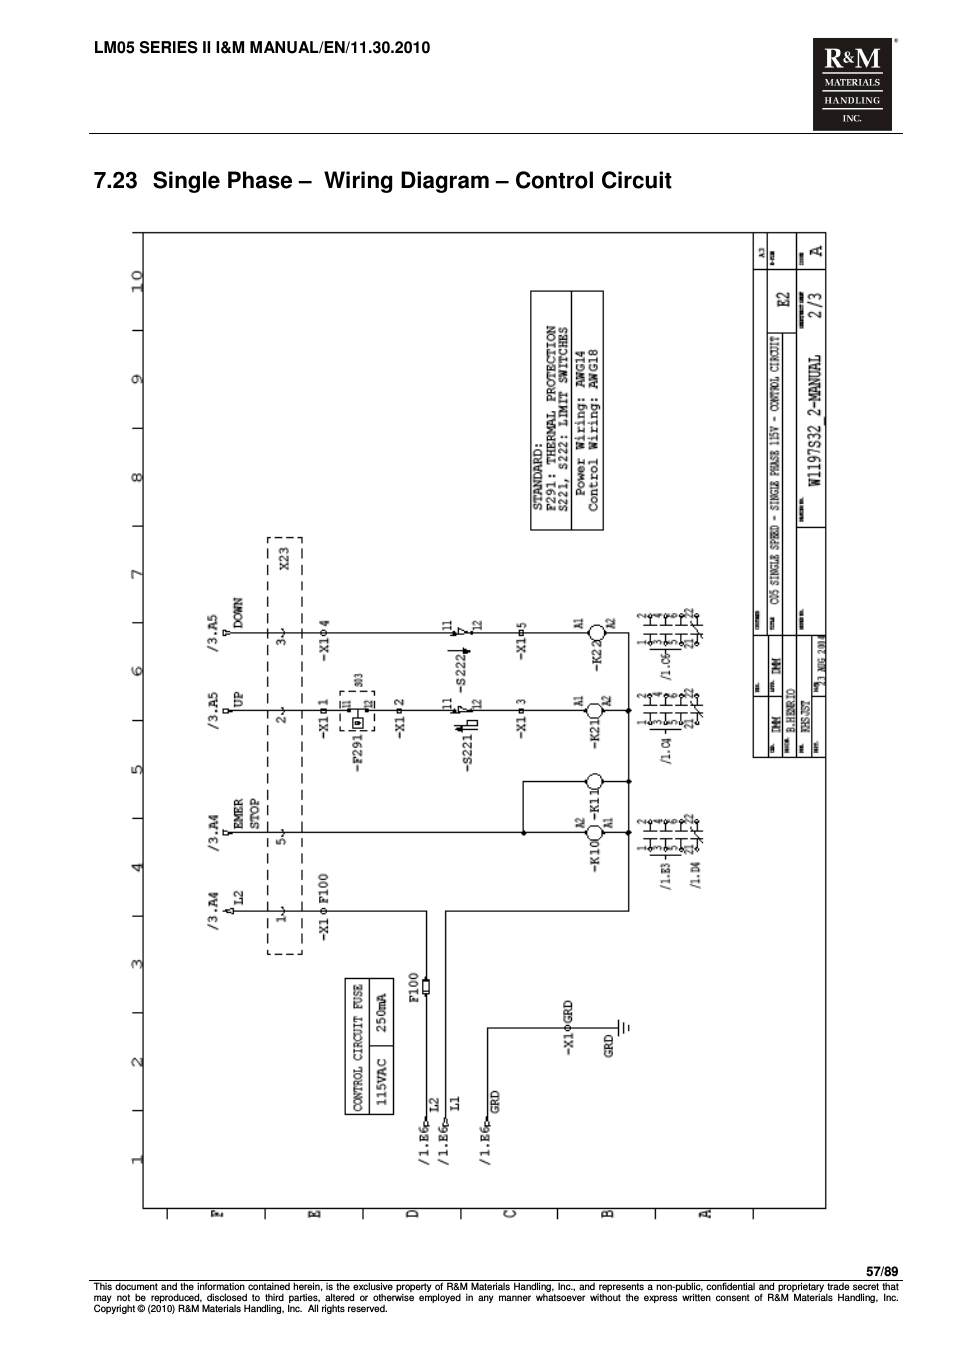 cm hoist wiring diagram Download-Demag Hoist Wiring Diagram 12-b